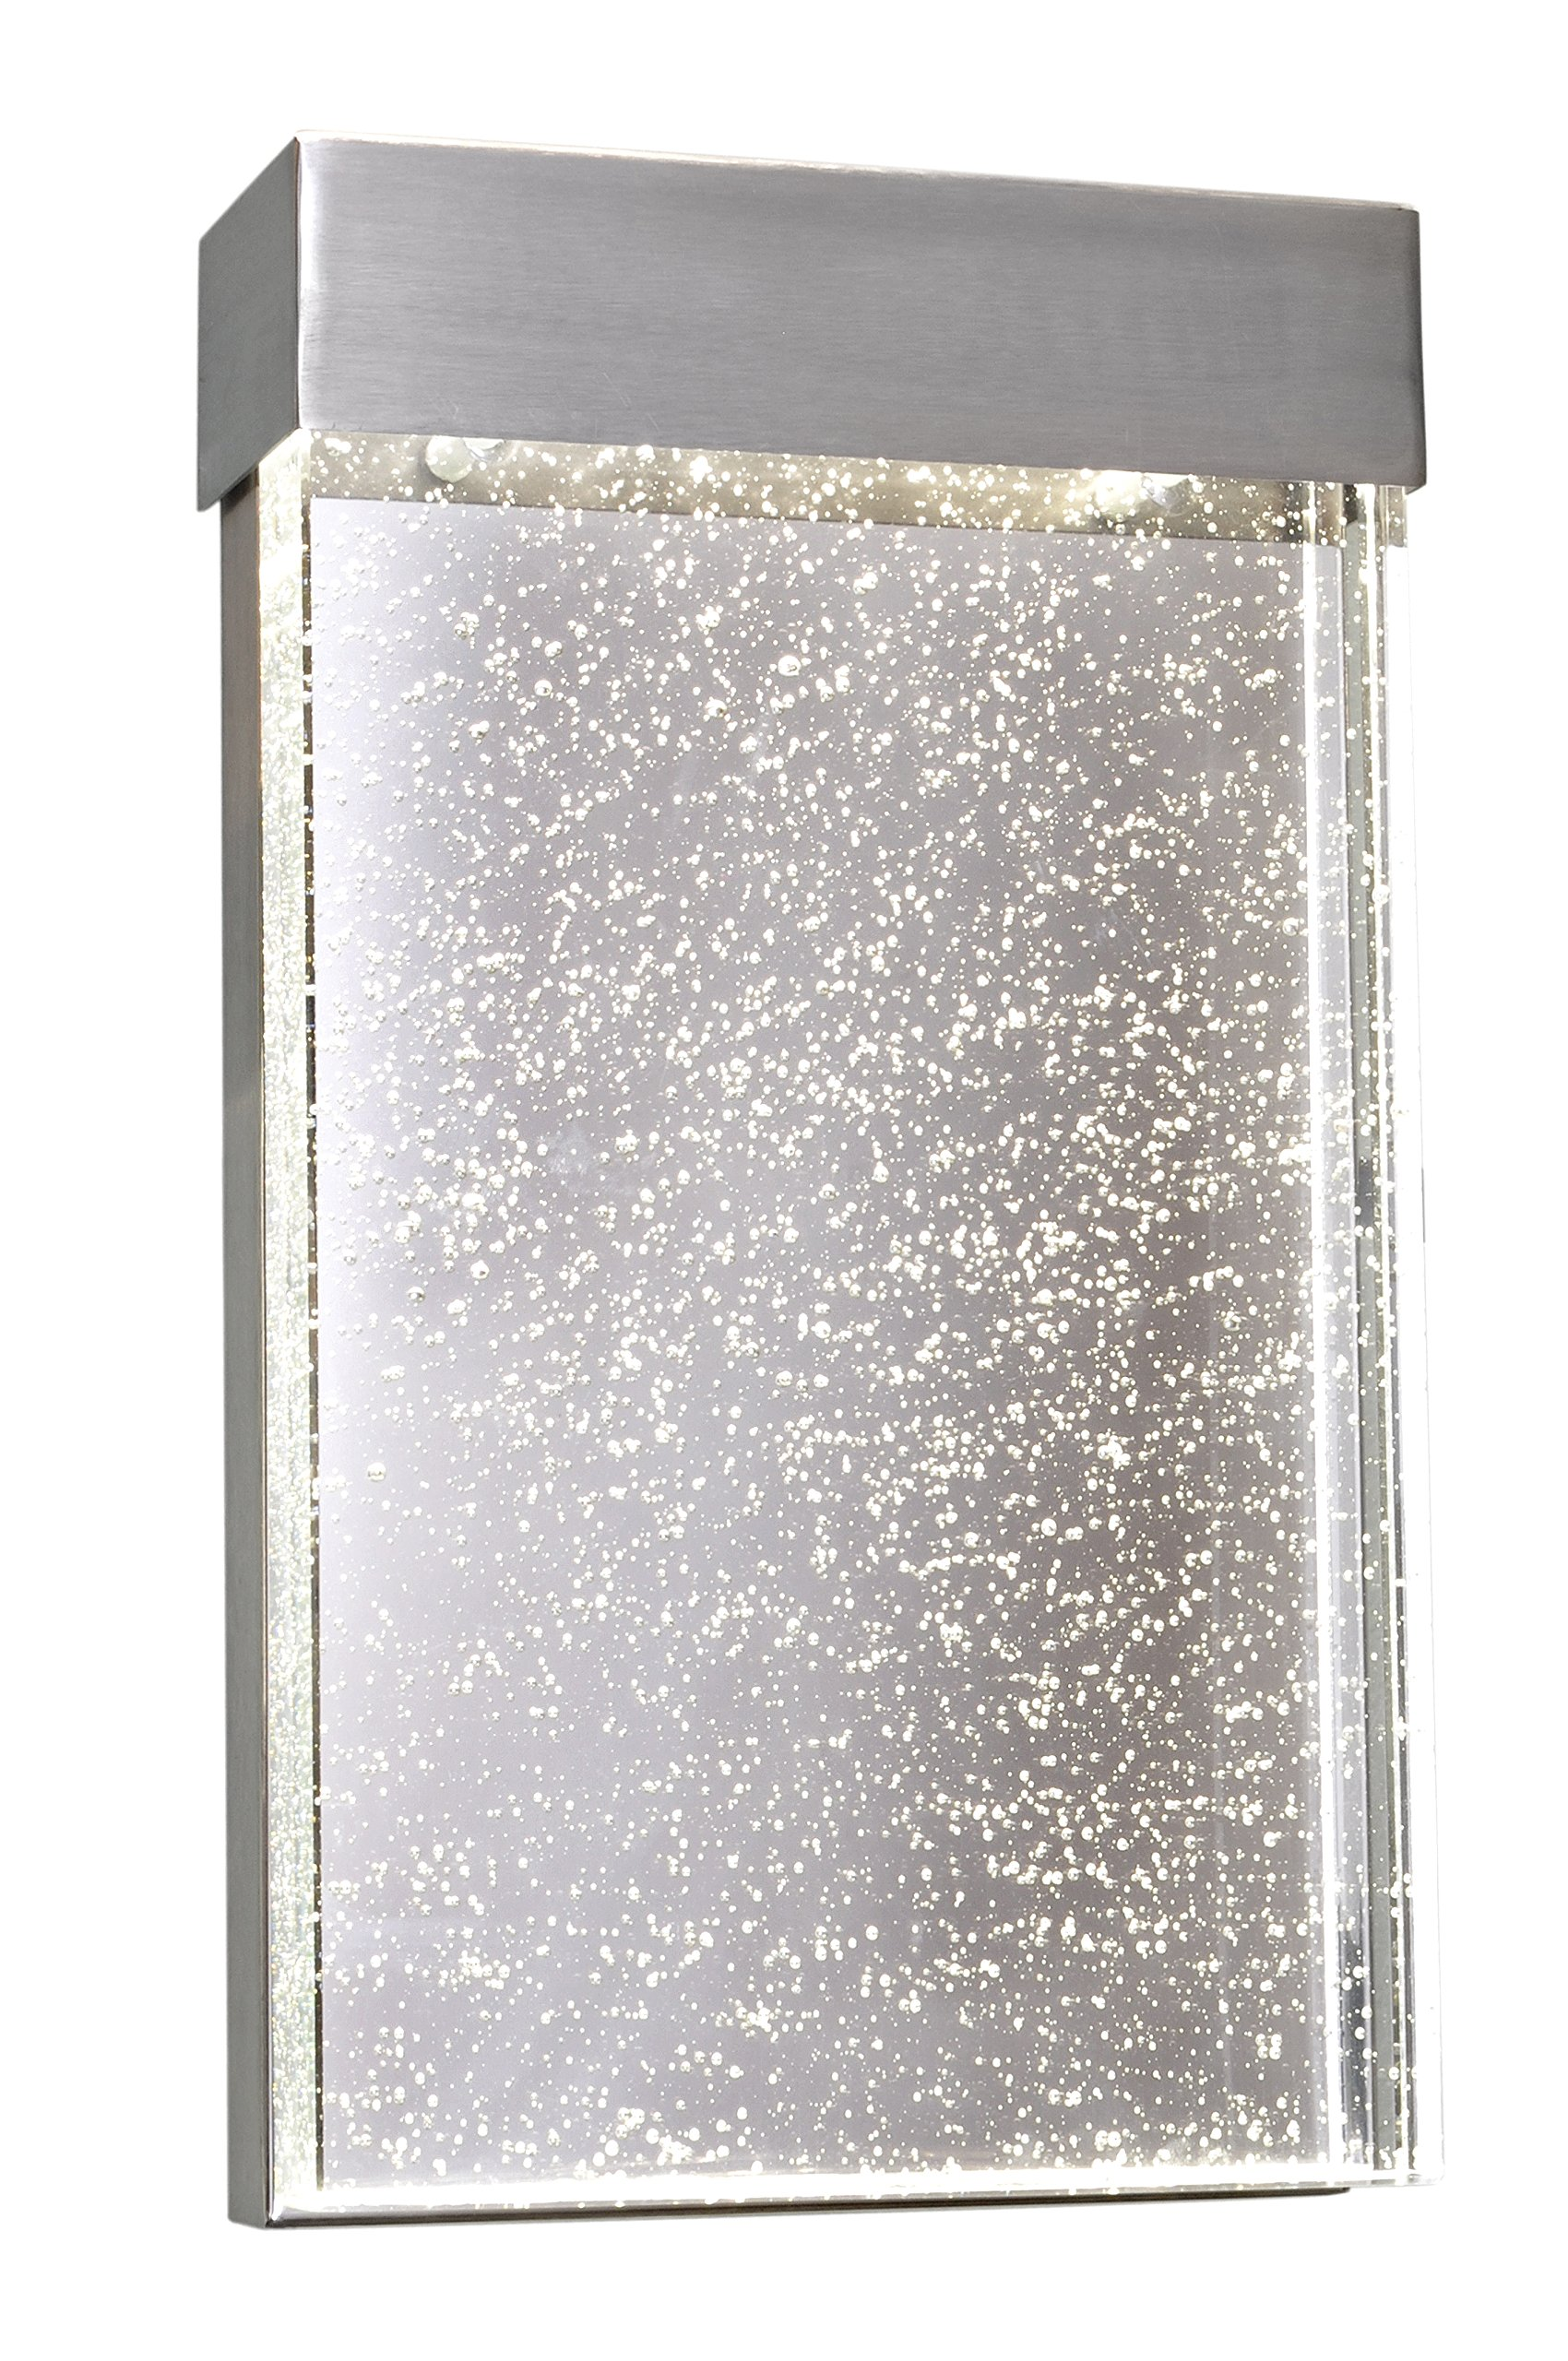 Maxim 88272BGSST Moda LED Outdoor Wall Sconce Outdoor Wall Mount, Stainless Steel Finish, Bubble Glass Glass, PCB LED Bulb , 26W Max., Wet Safety Rating, 2700K Color Temp, Shade Material, 1760 Rated Lumens